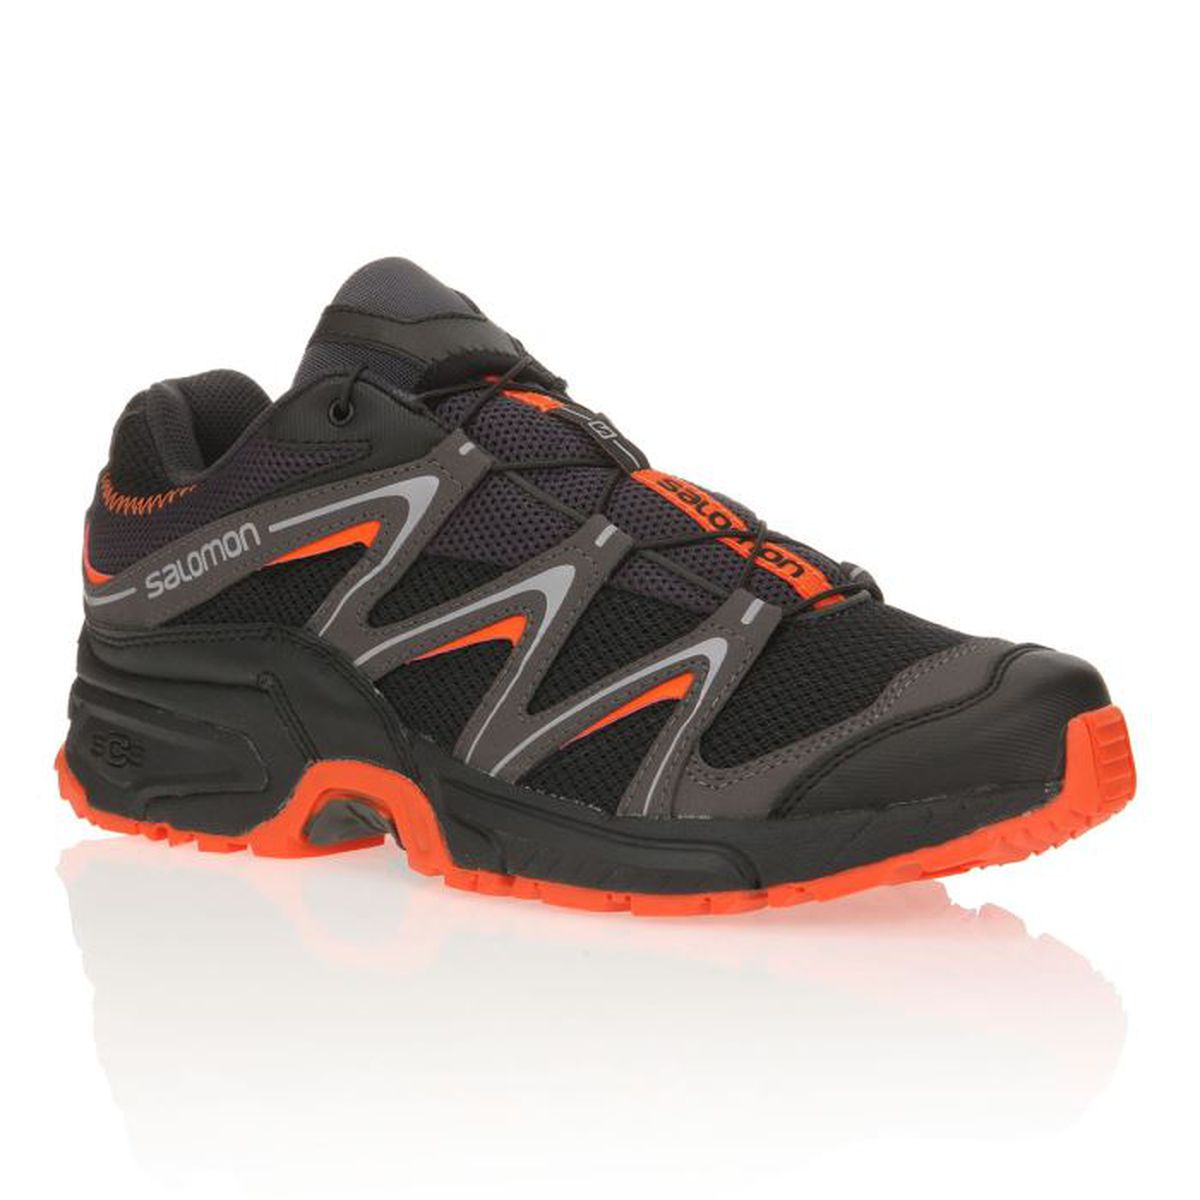 salomon chaussures trail running volcano homme prix pas cher cdiscount. Black Bedroom Furniture Sets. Home Design Ideas